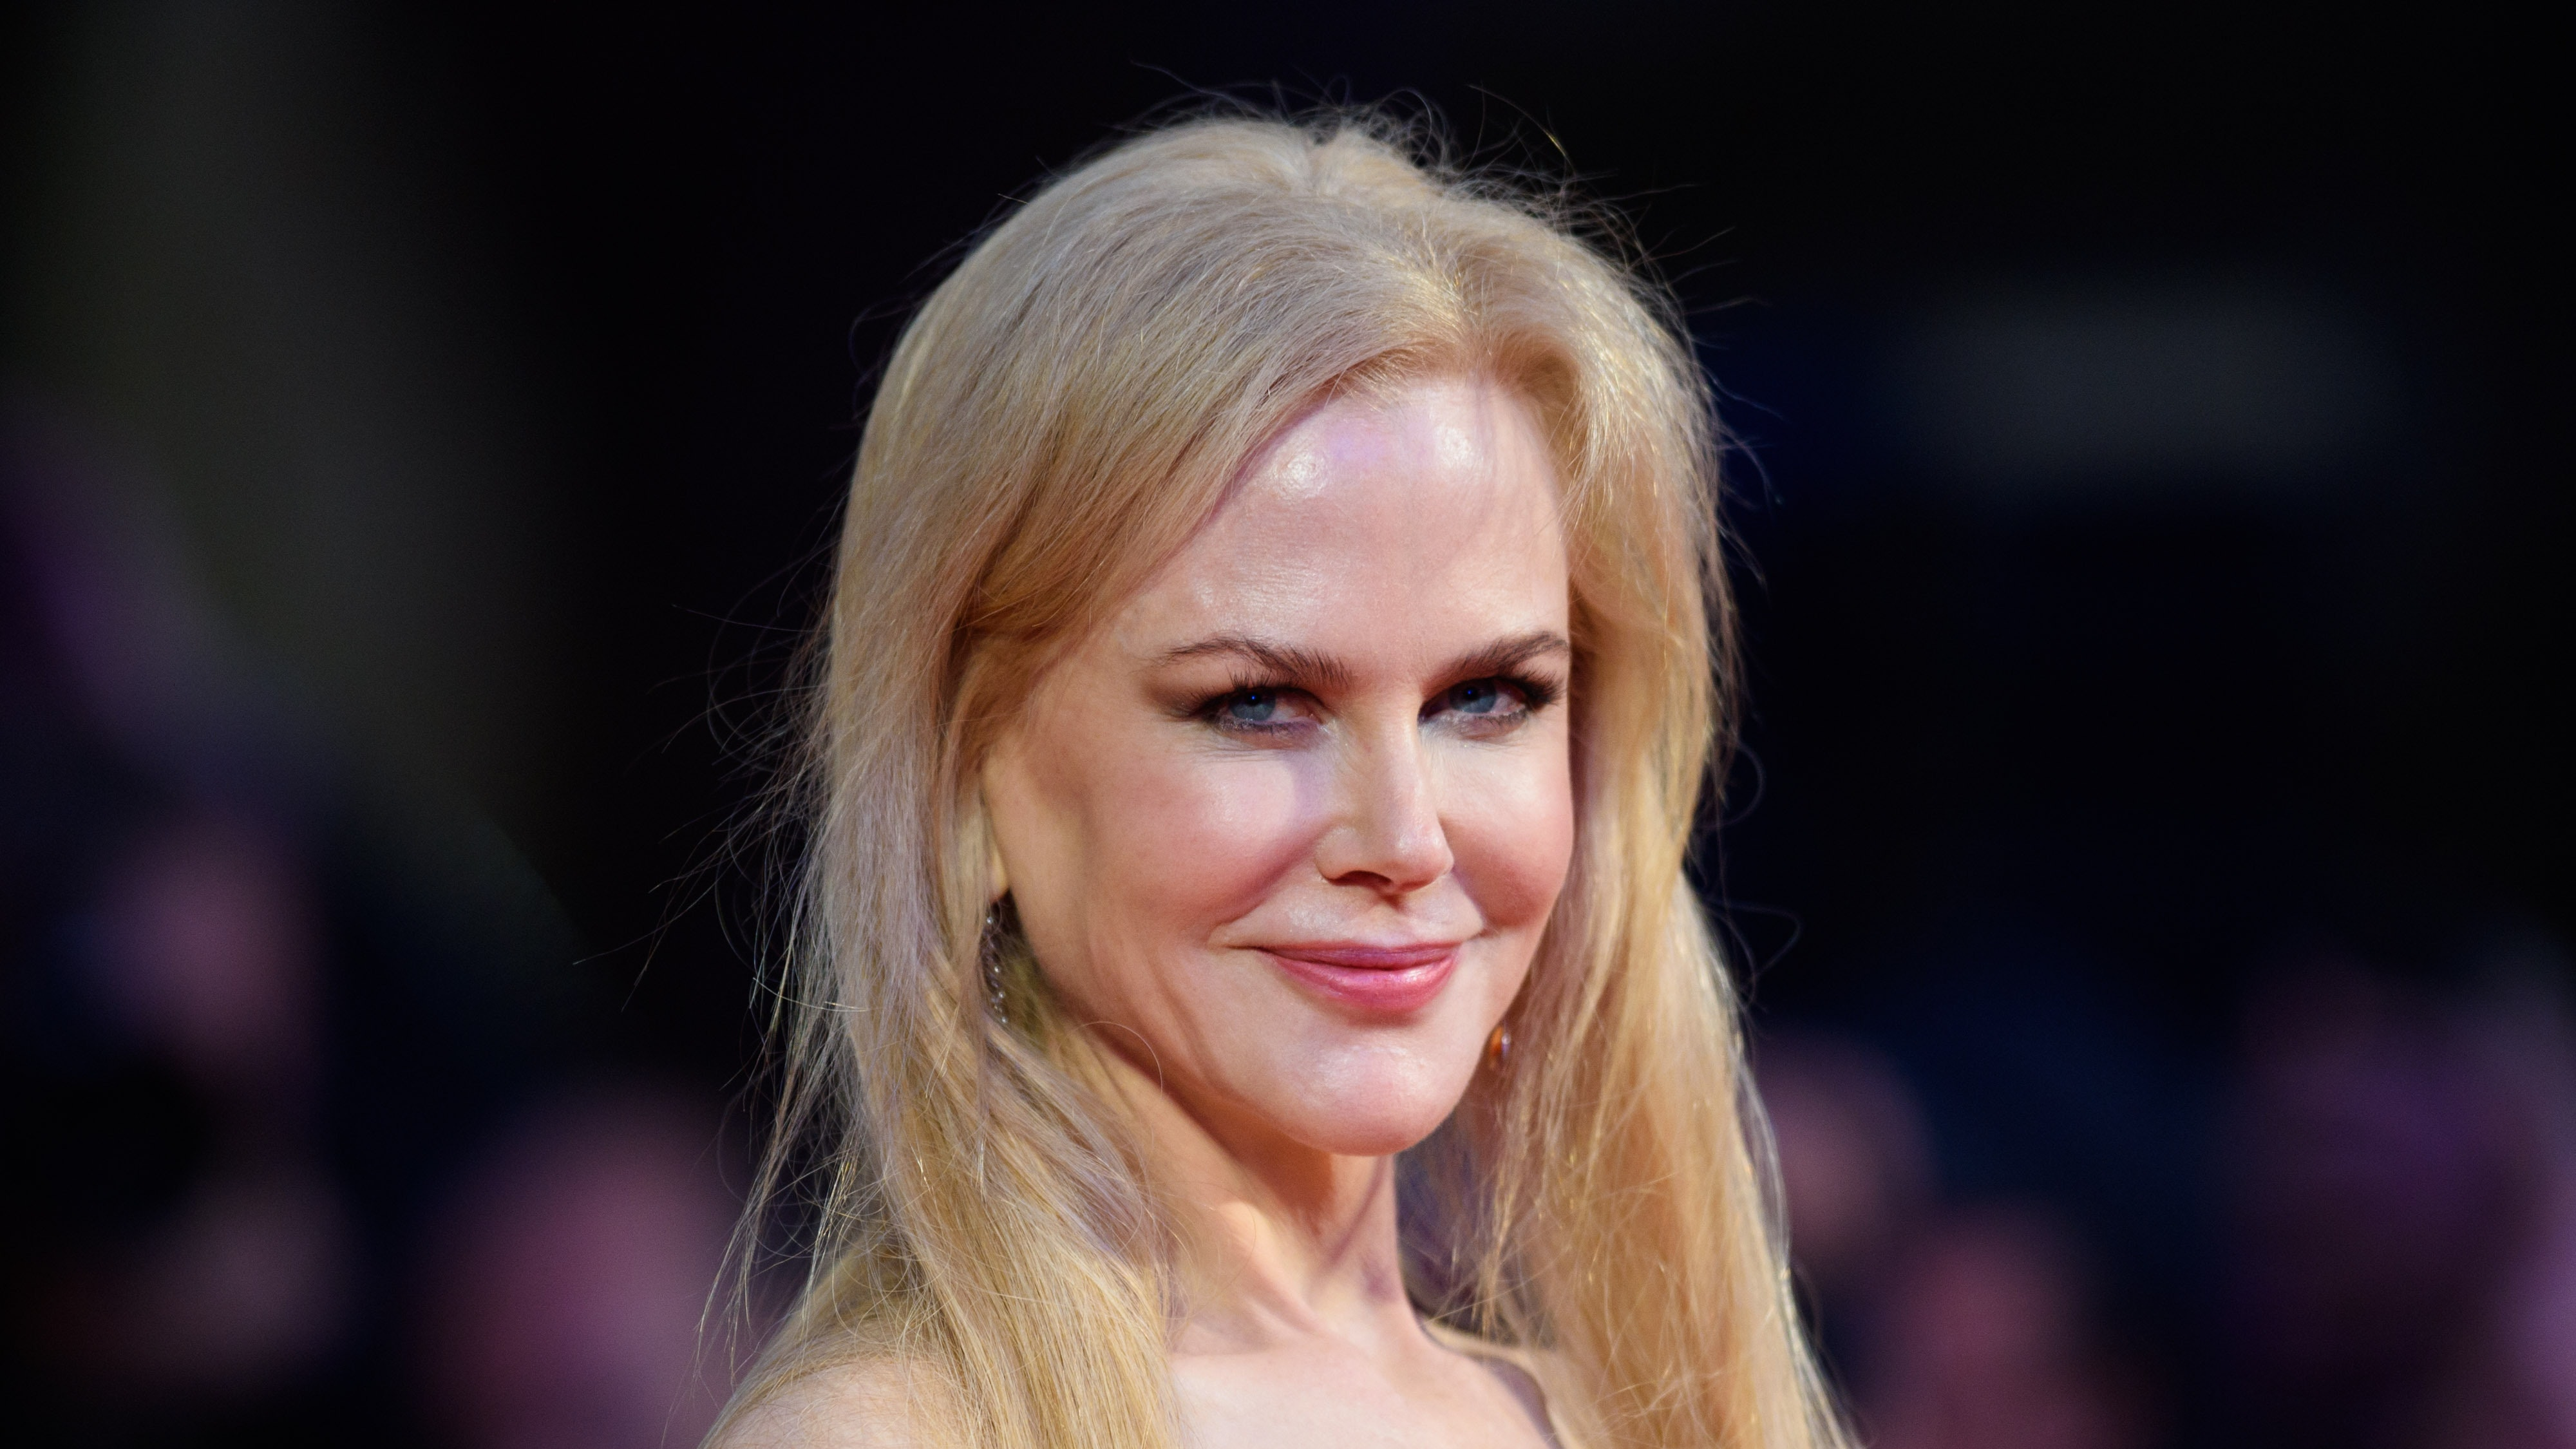 Nicole Kidman joins Instagram with Time's Up post   BT